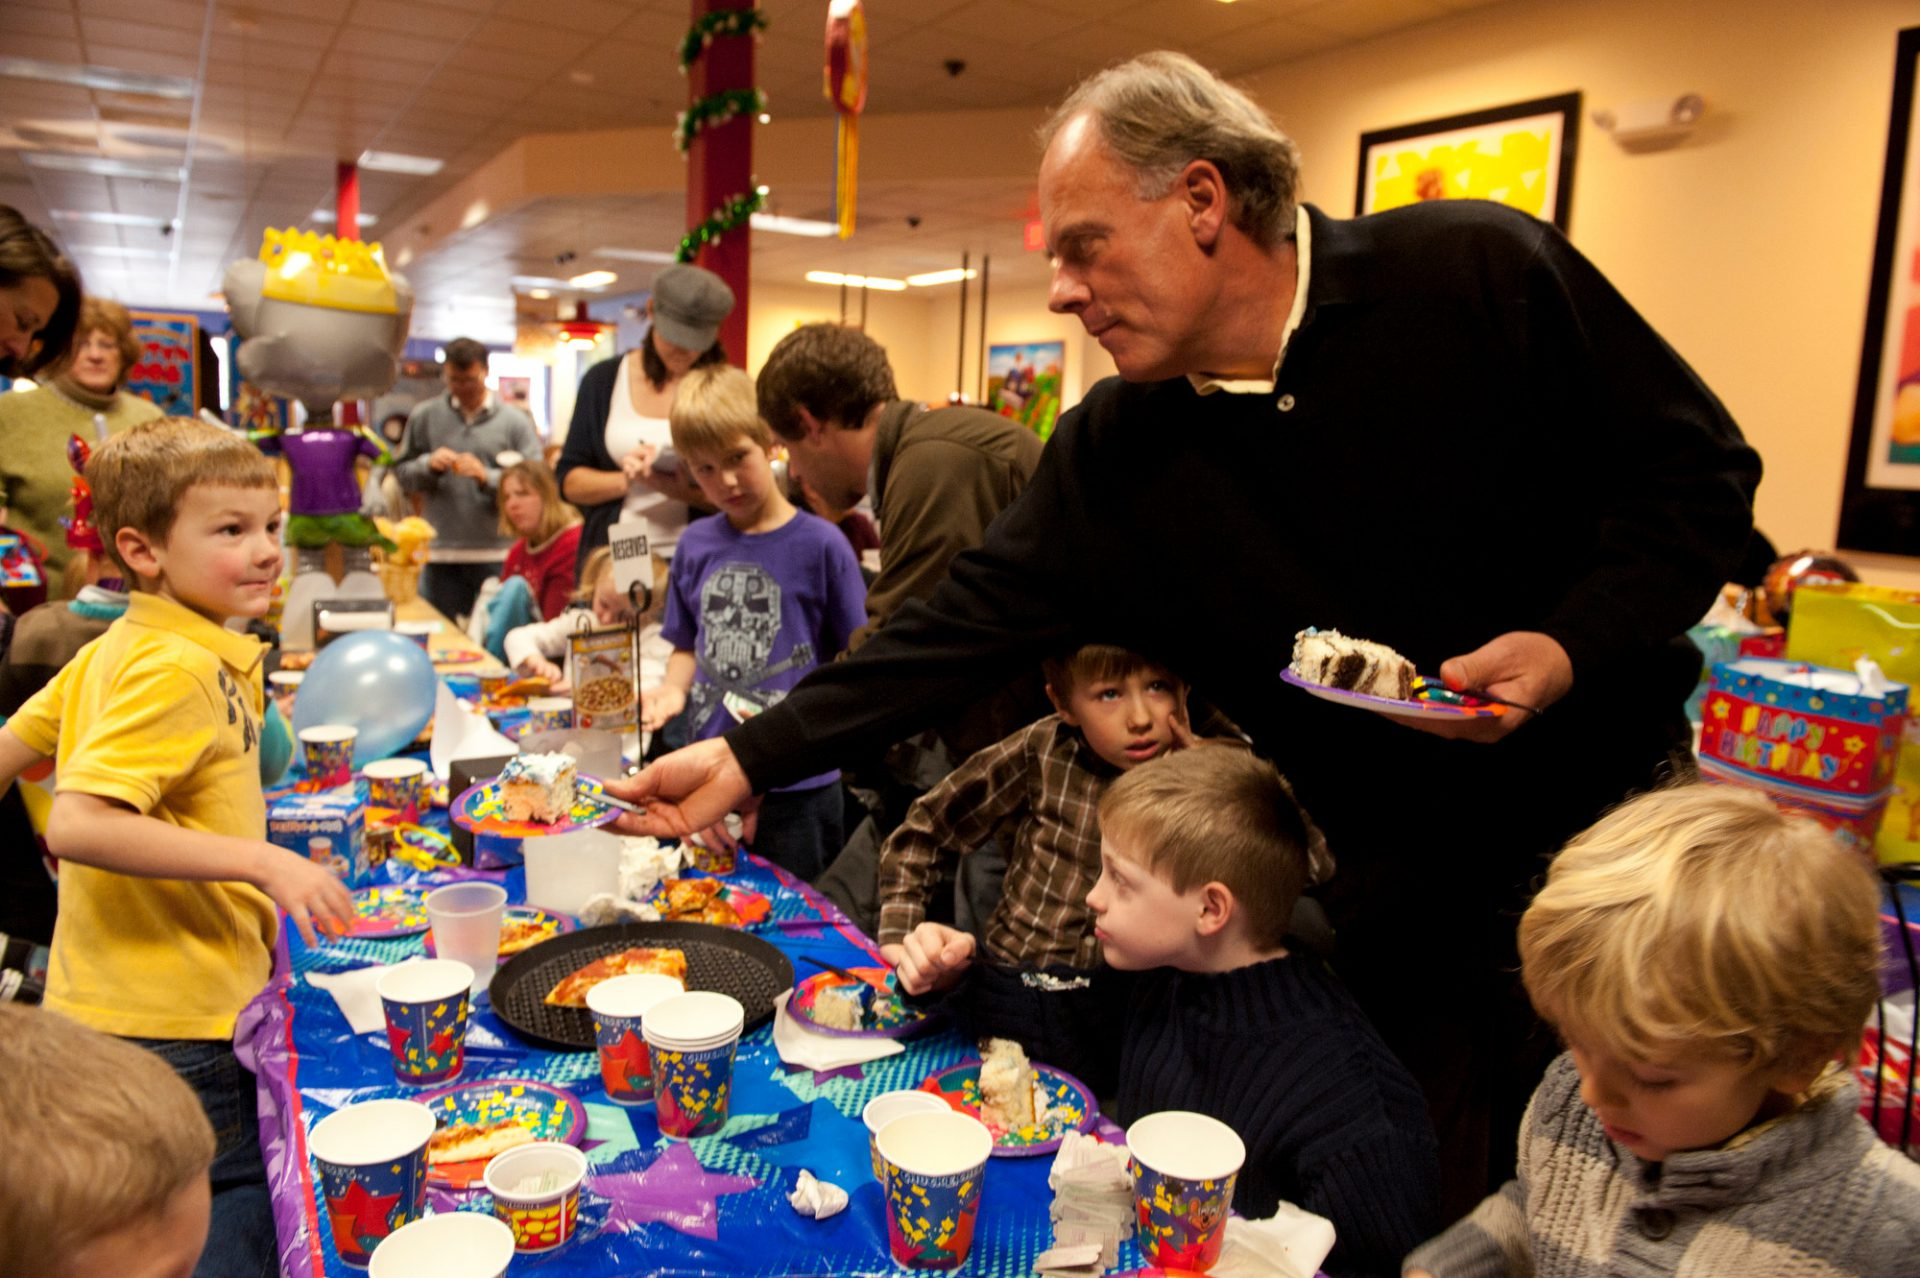 Photo: A birthday party at Chuck E. Cheese's in Lincoln, Nebraska.